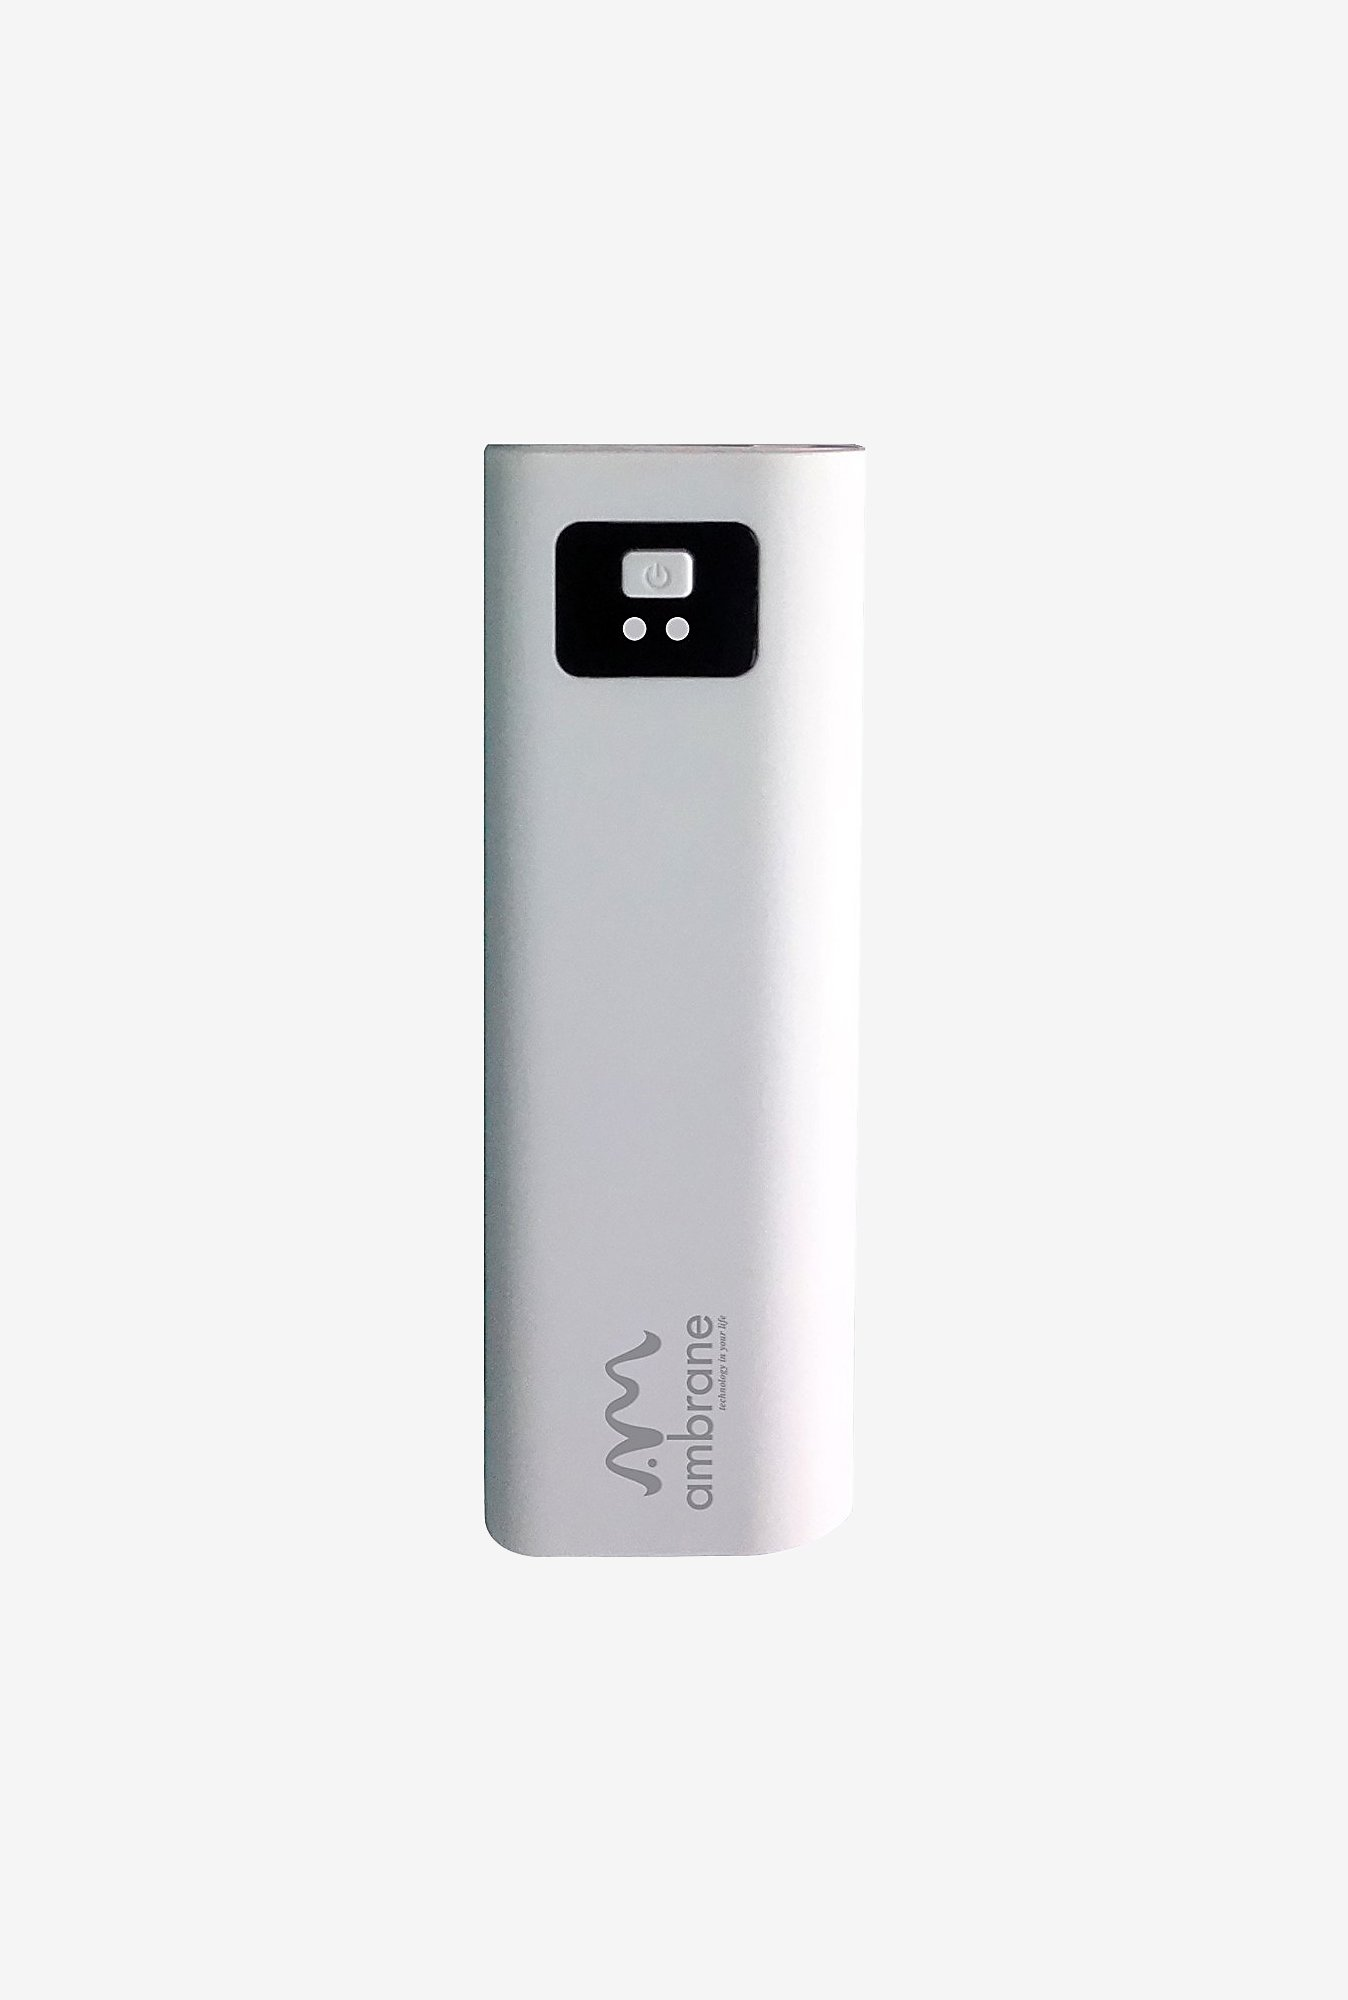 Ambrane P-202 2200 mAh Power Bank (White)